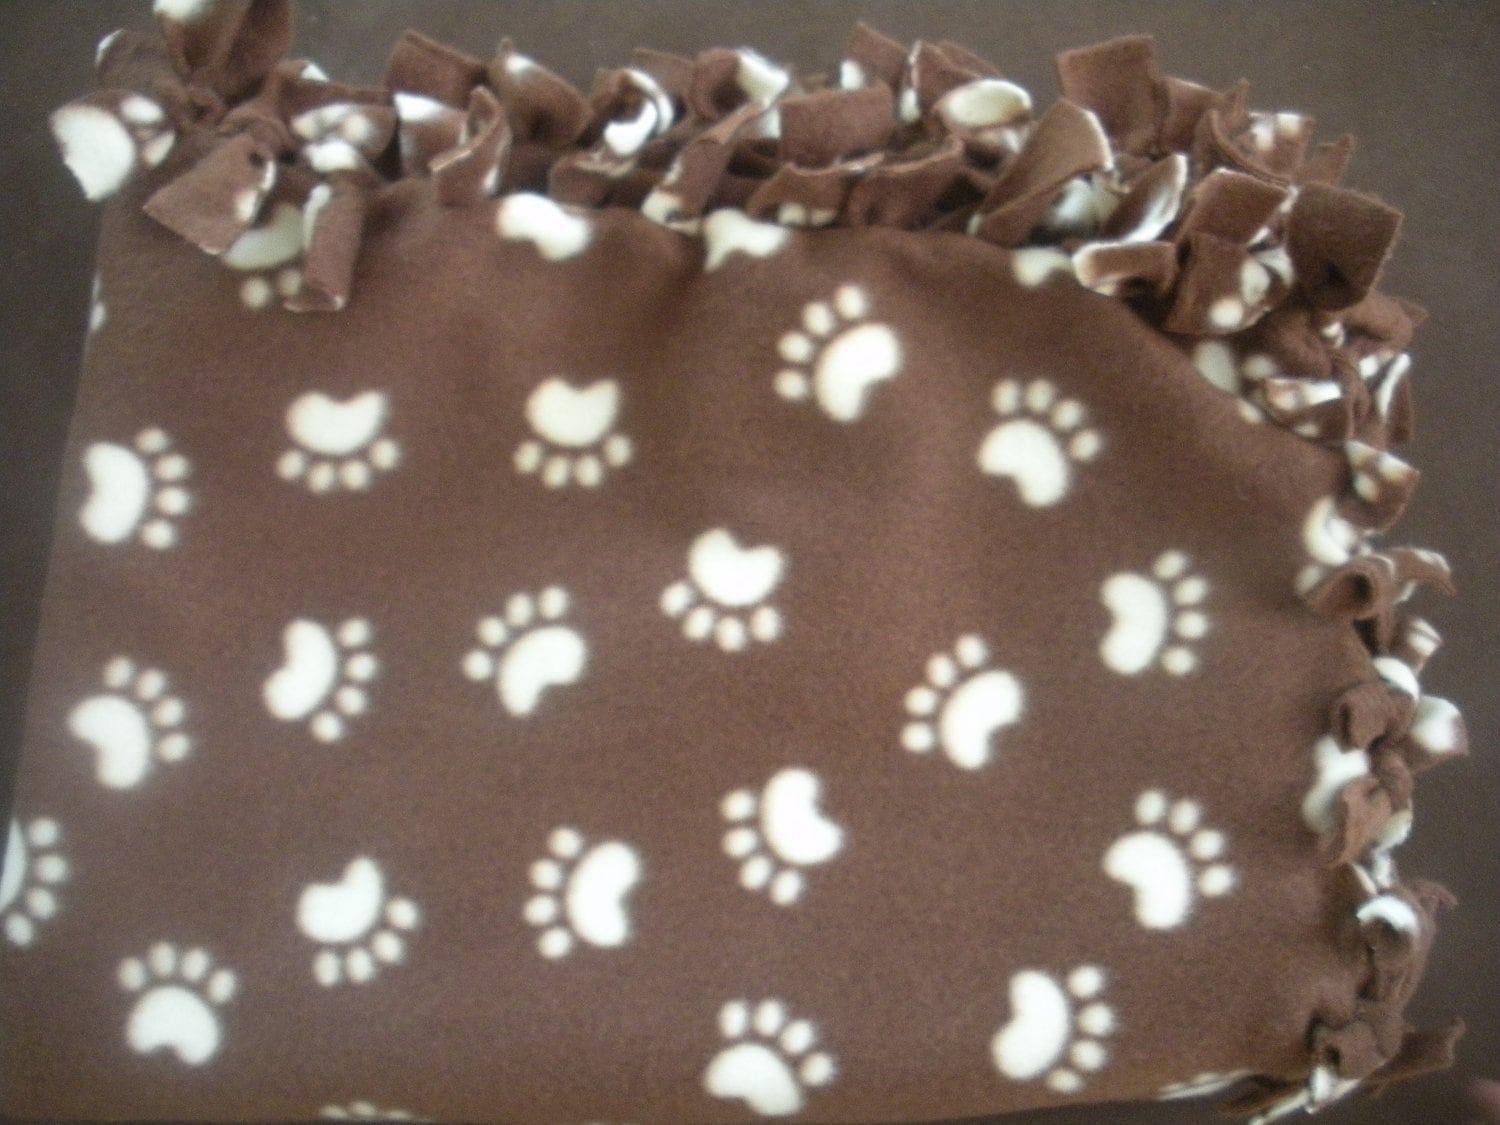 Dog Blanket With Their Own Paw Prints On